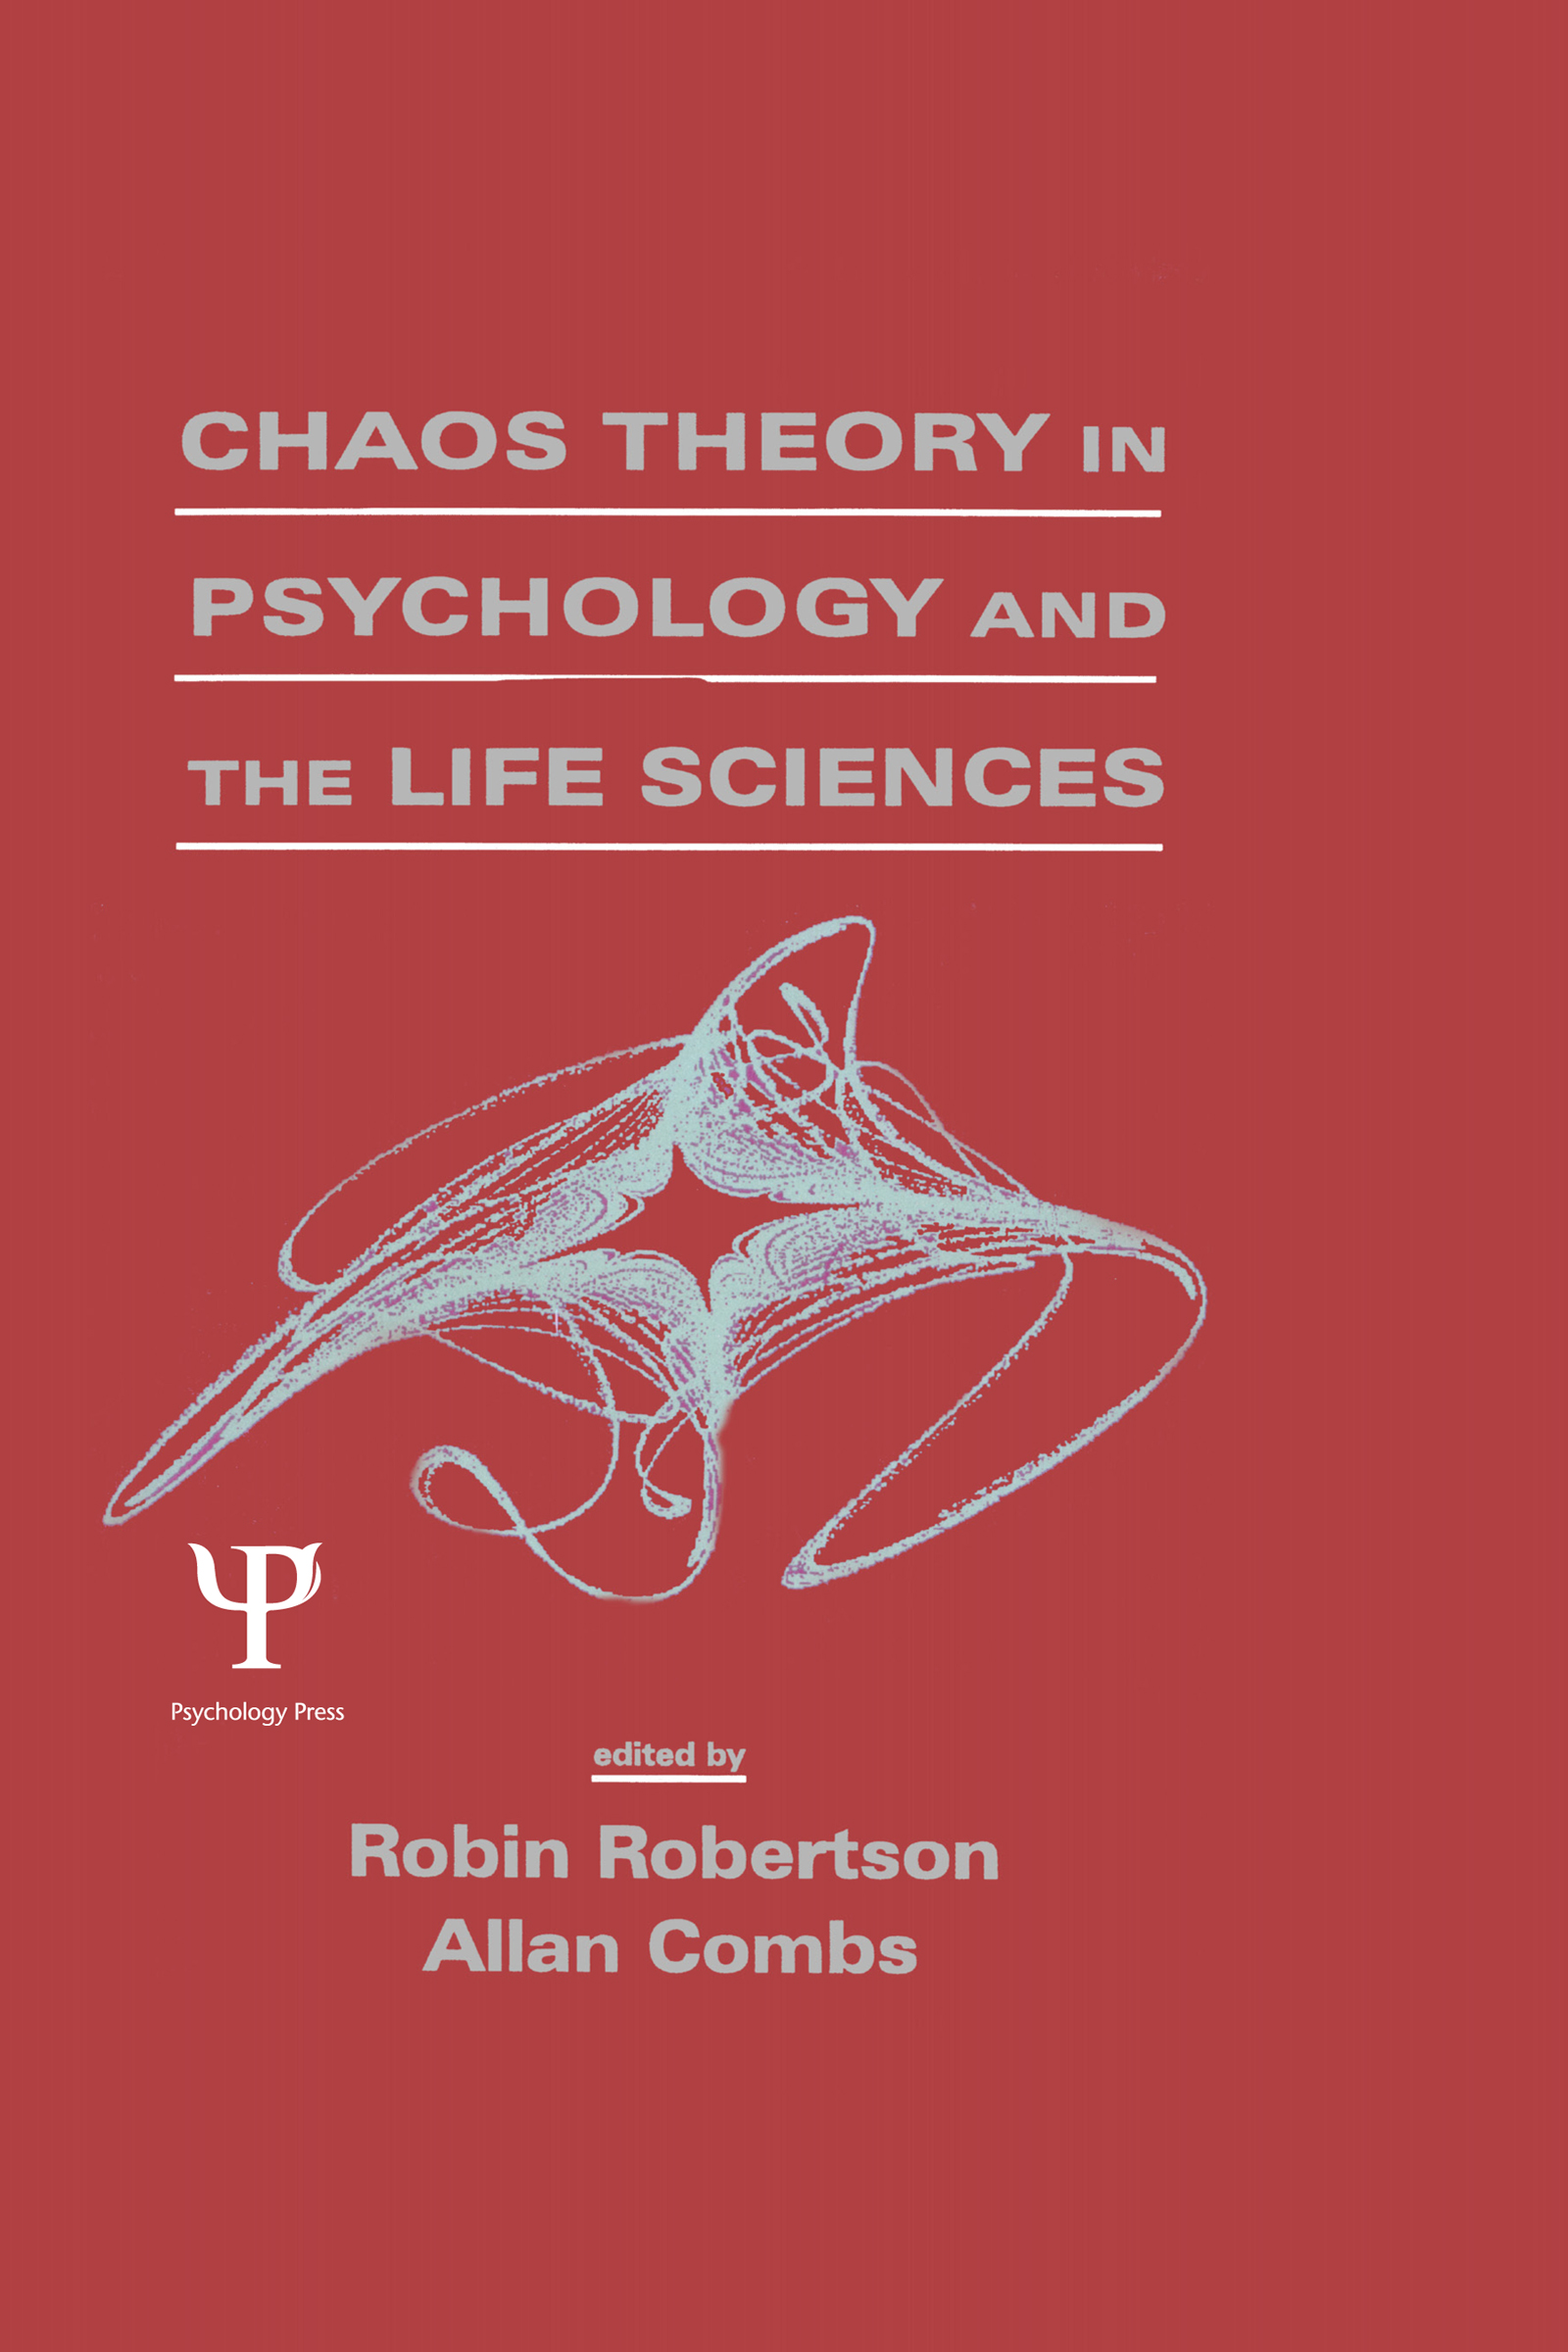 How Predictable Is the Future? The Conflict Between Traditional Chaos Theory and the Psychology of Prediction, and the Challenge for Chaos Psychology